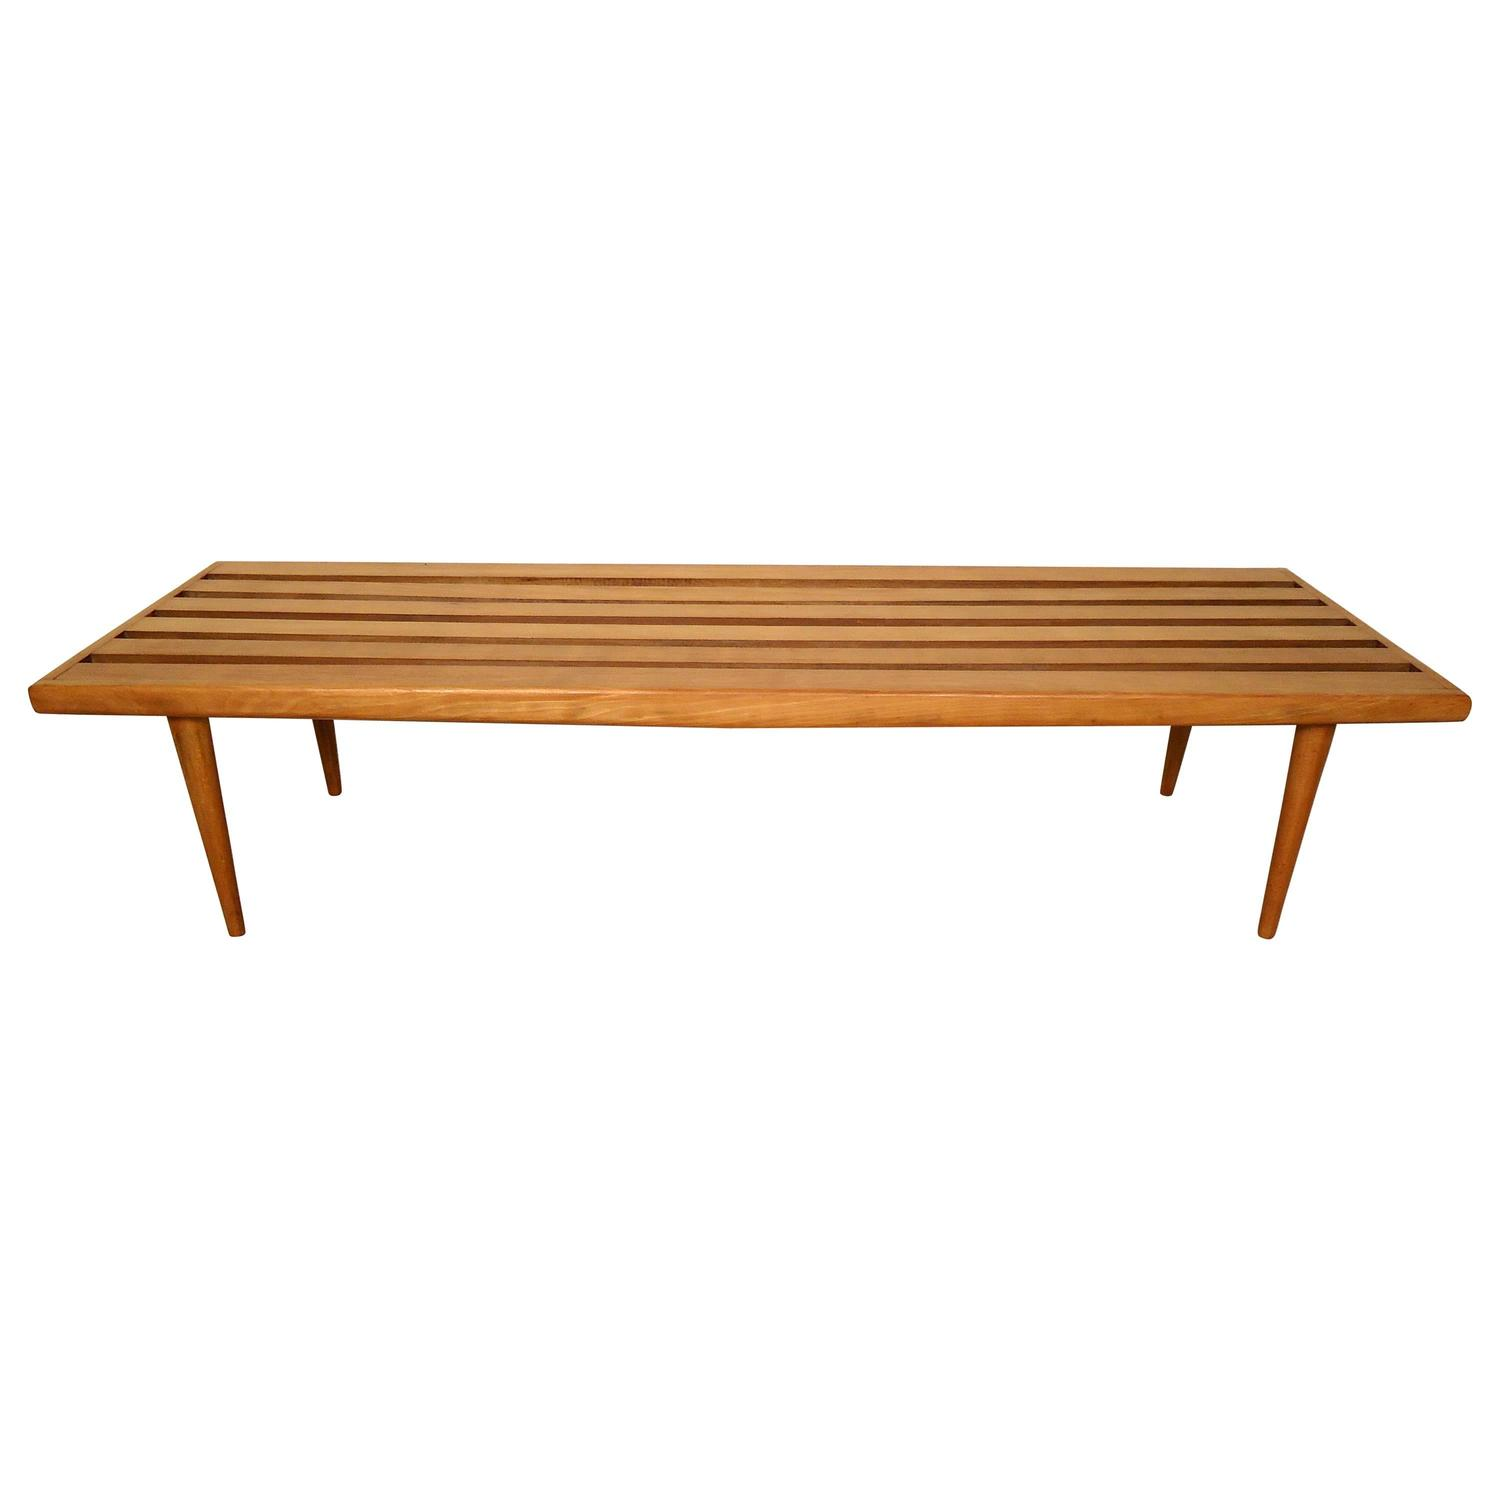 Vintage-Modern Wooden Slat Bench/Coffee Table At 1stdibs